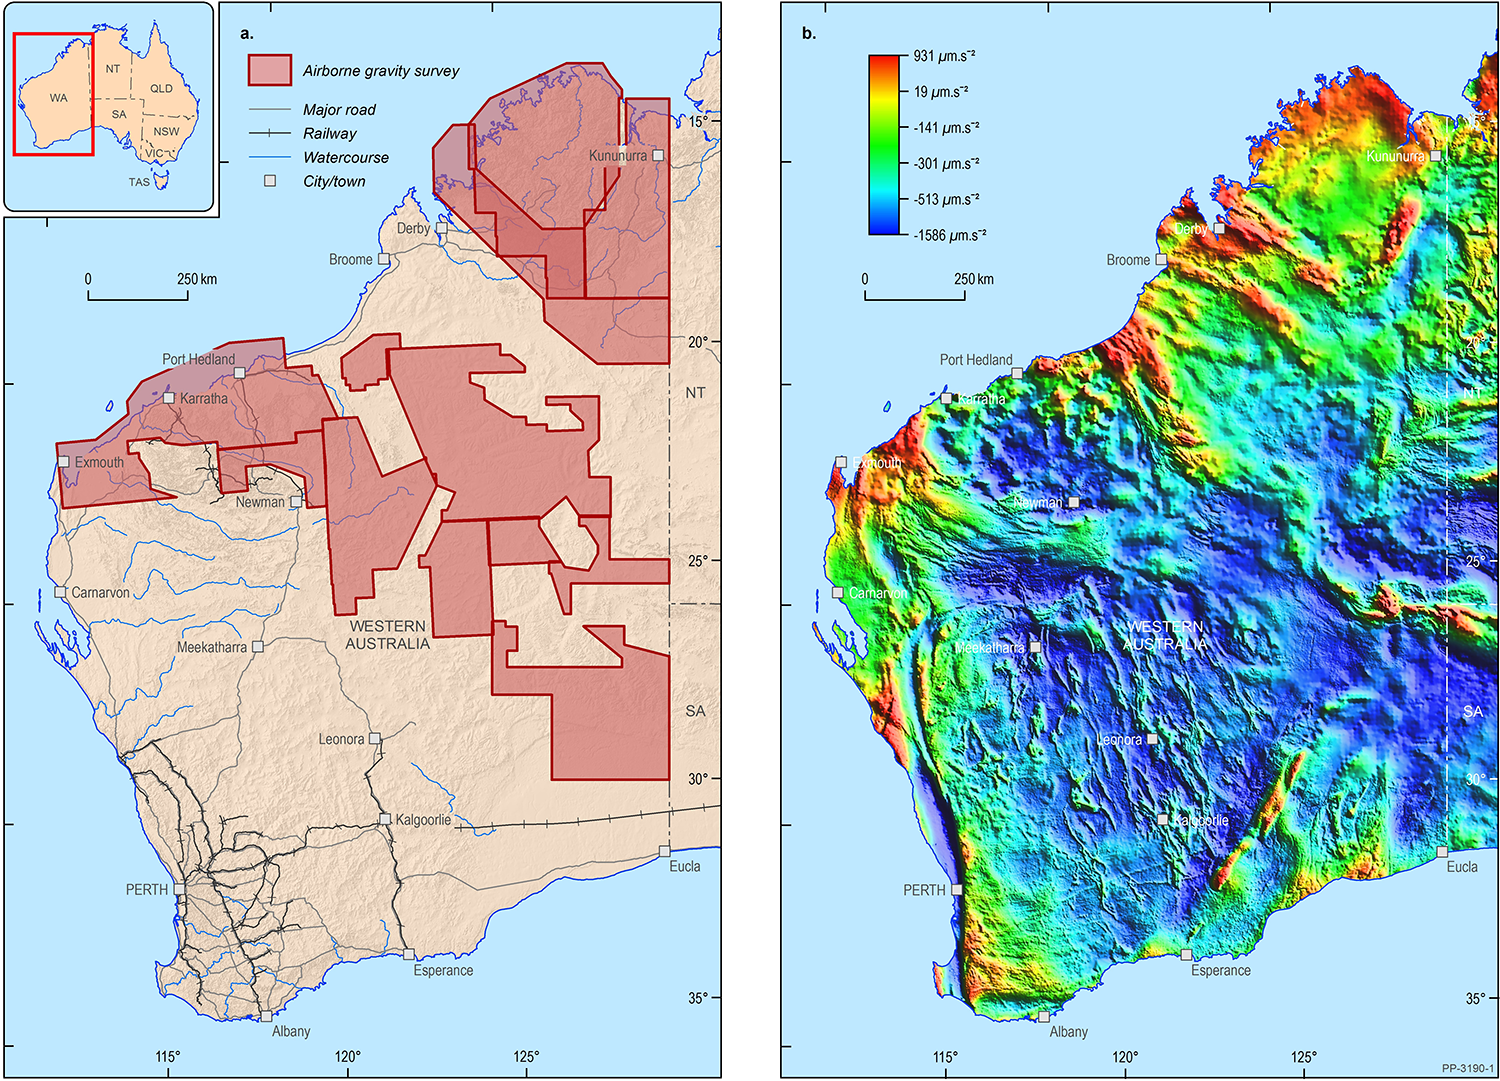 Due to the complexity of this image no alternative description has been provided. Please email Geoscience Australia at clientservices@ga.gov.au for an alternate description.